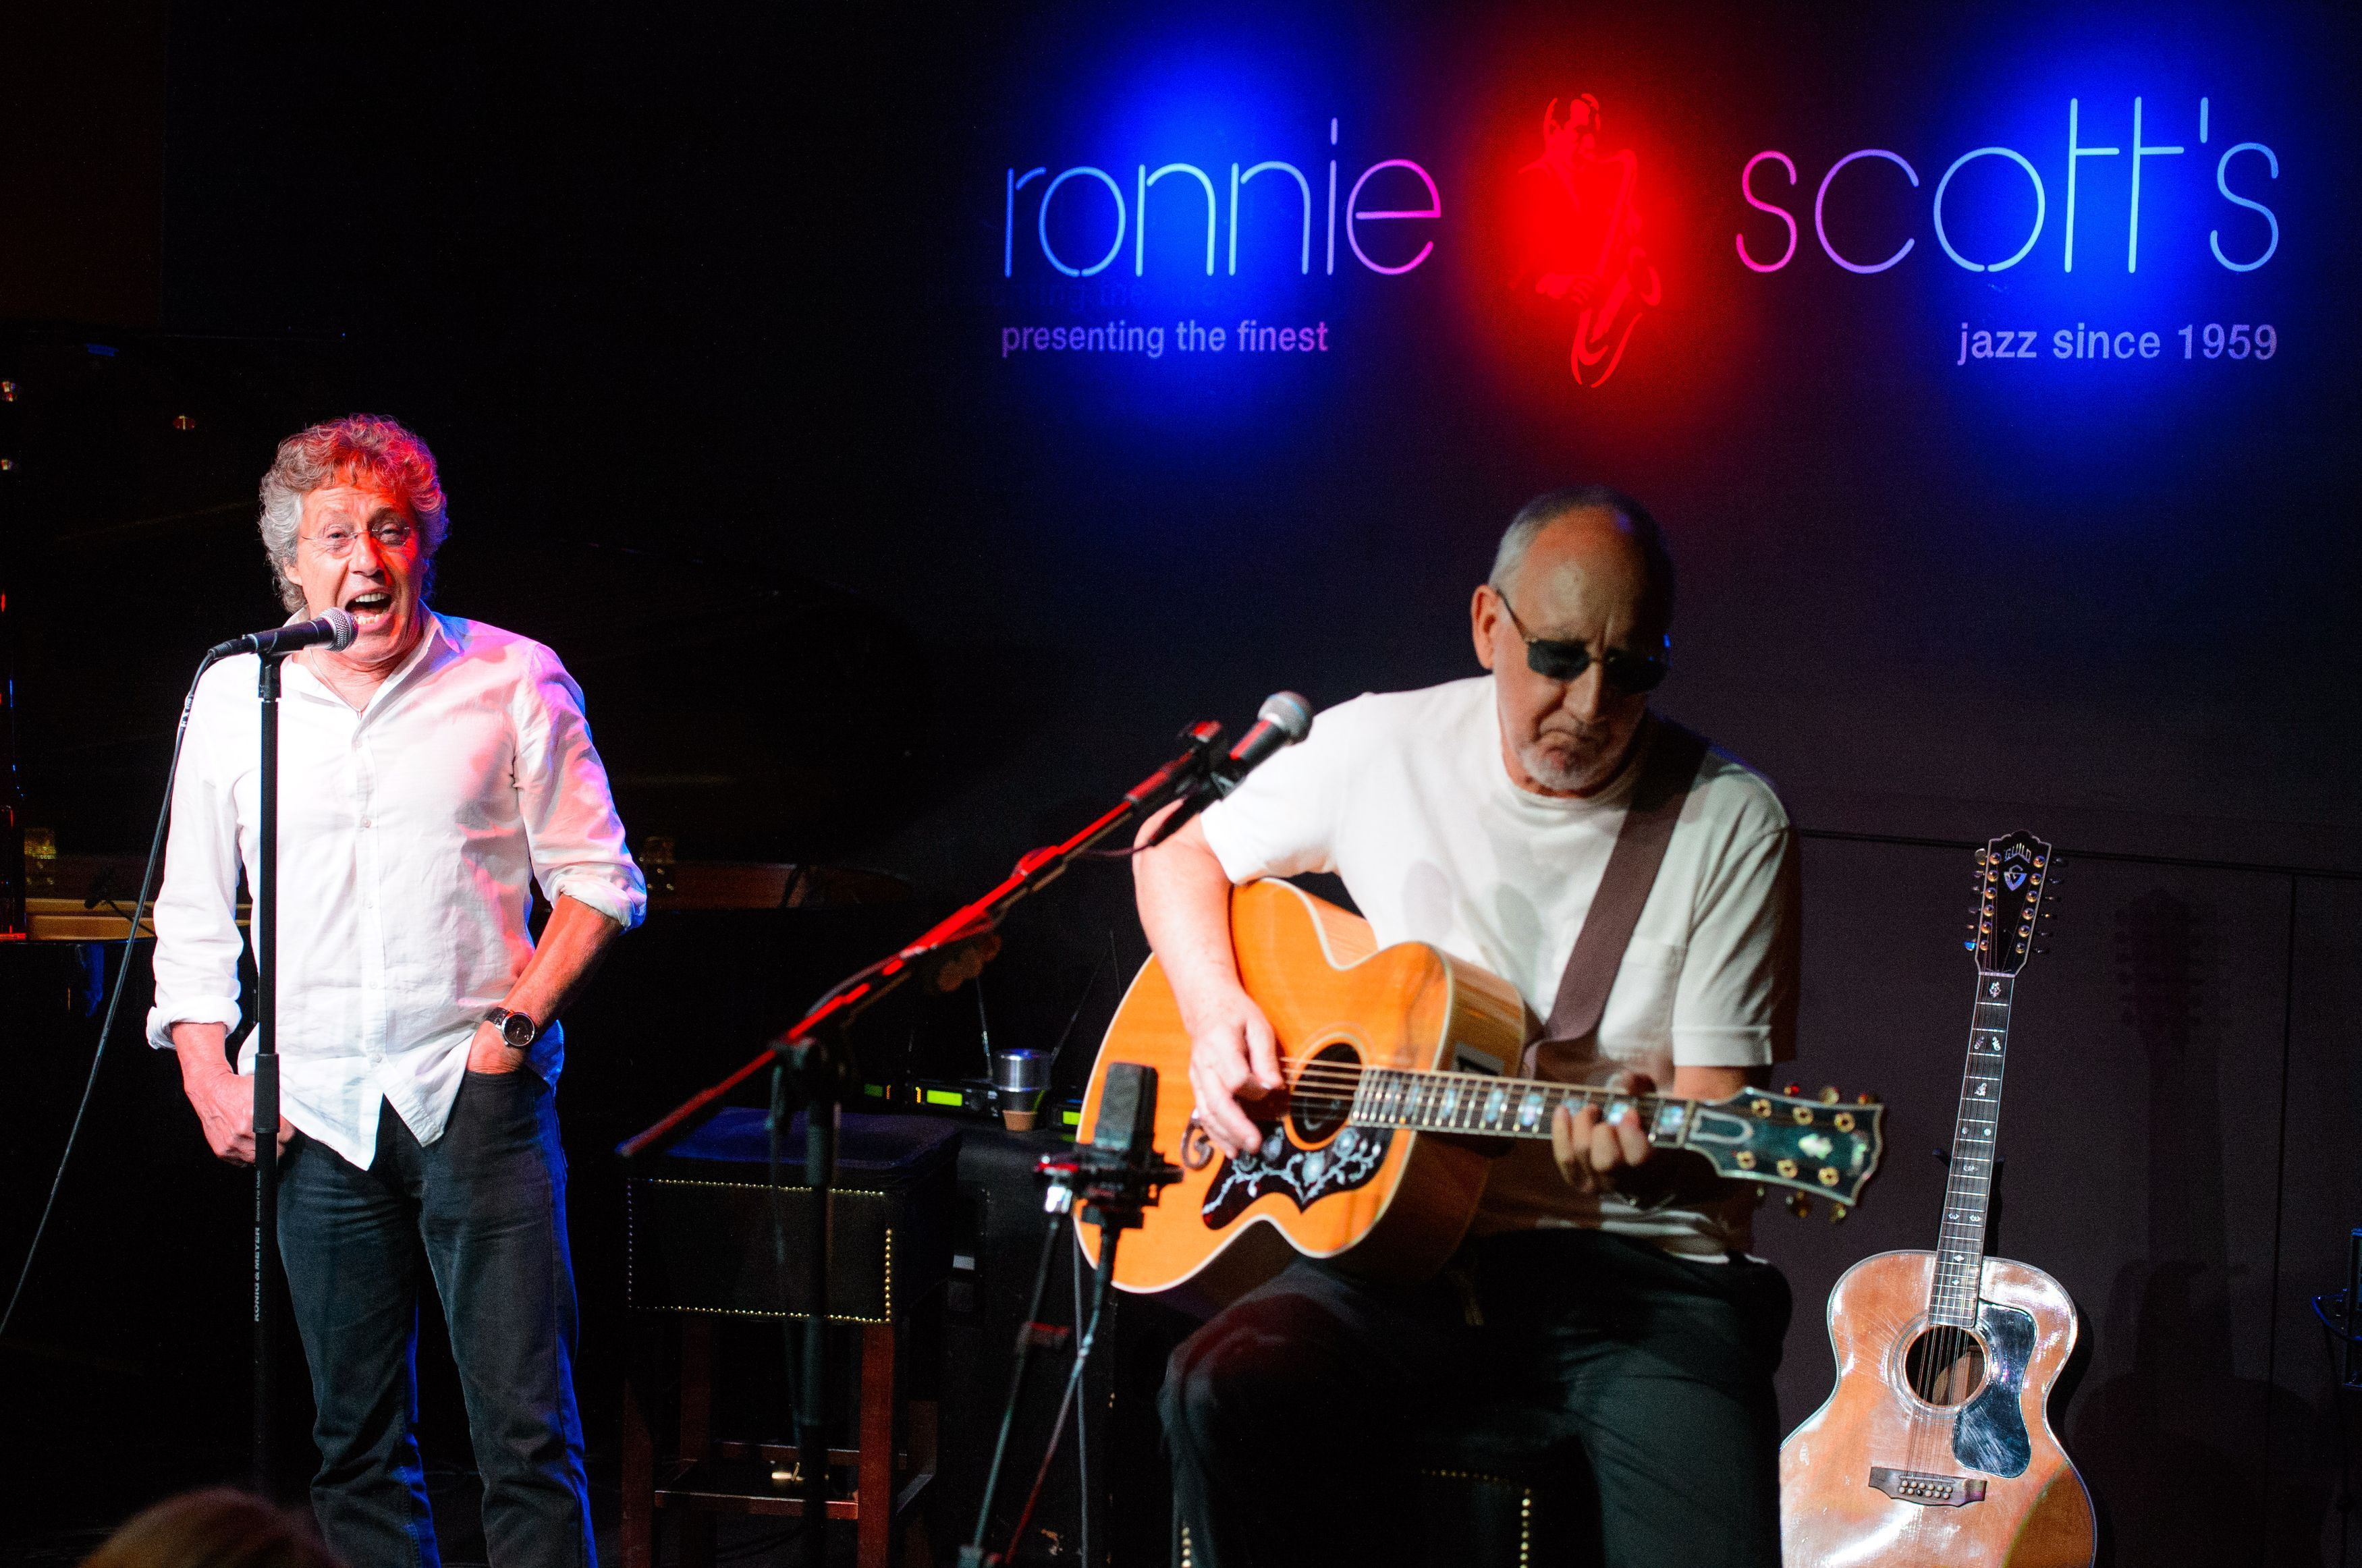 The Who playing at Ronnie Scott's